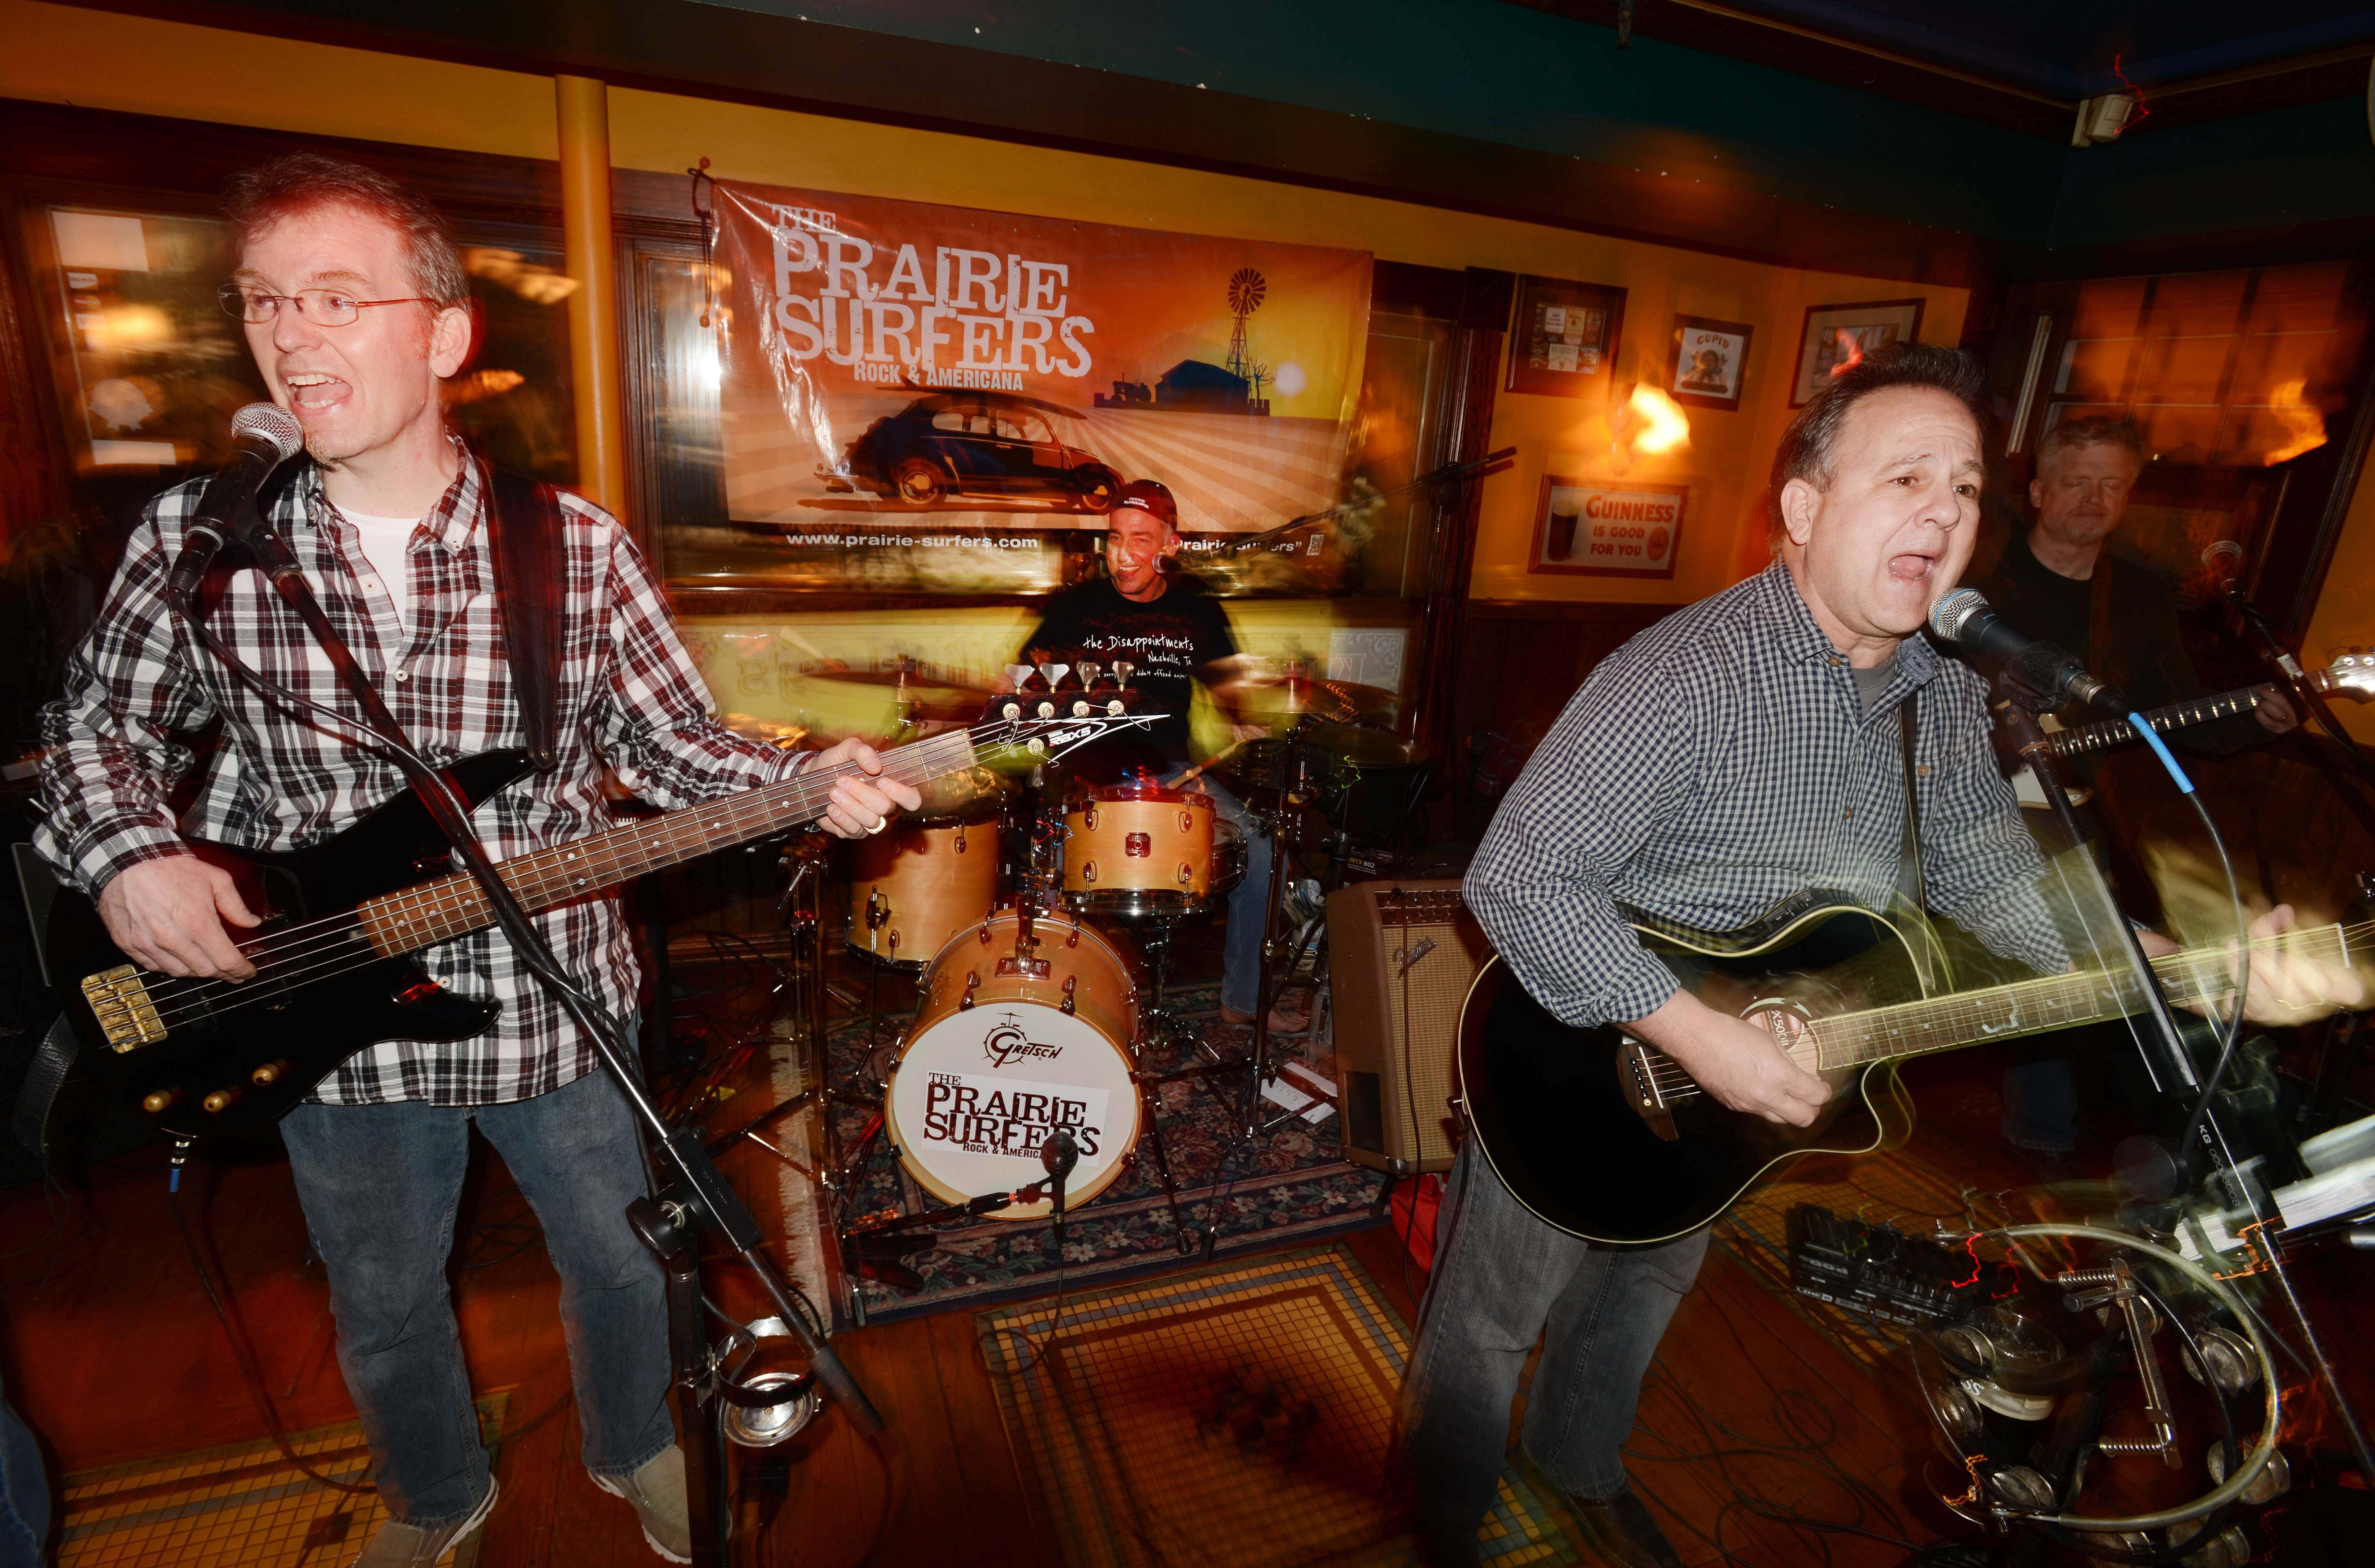 The Prairie Surfers' Glenn Donaldson and KC Holcomb rock the stage at Quigley's Irish Pub in Naperville with drummer Steve Mores of Aurora, who is back with the band after a successful surgery to remove a tumor at his brainstem.